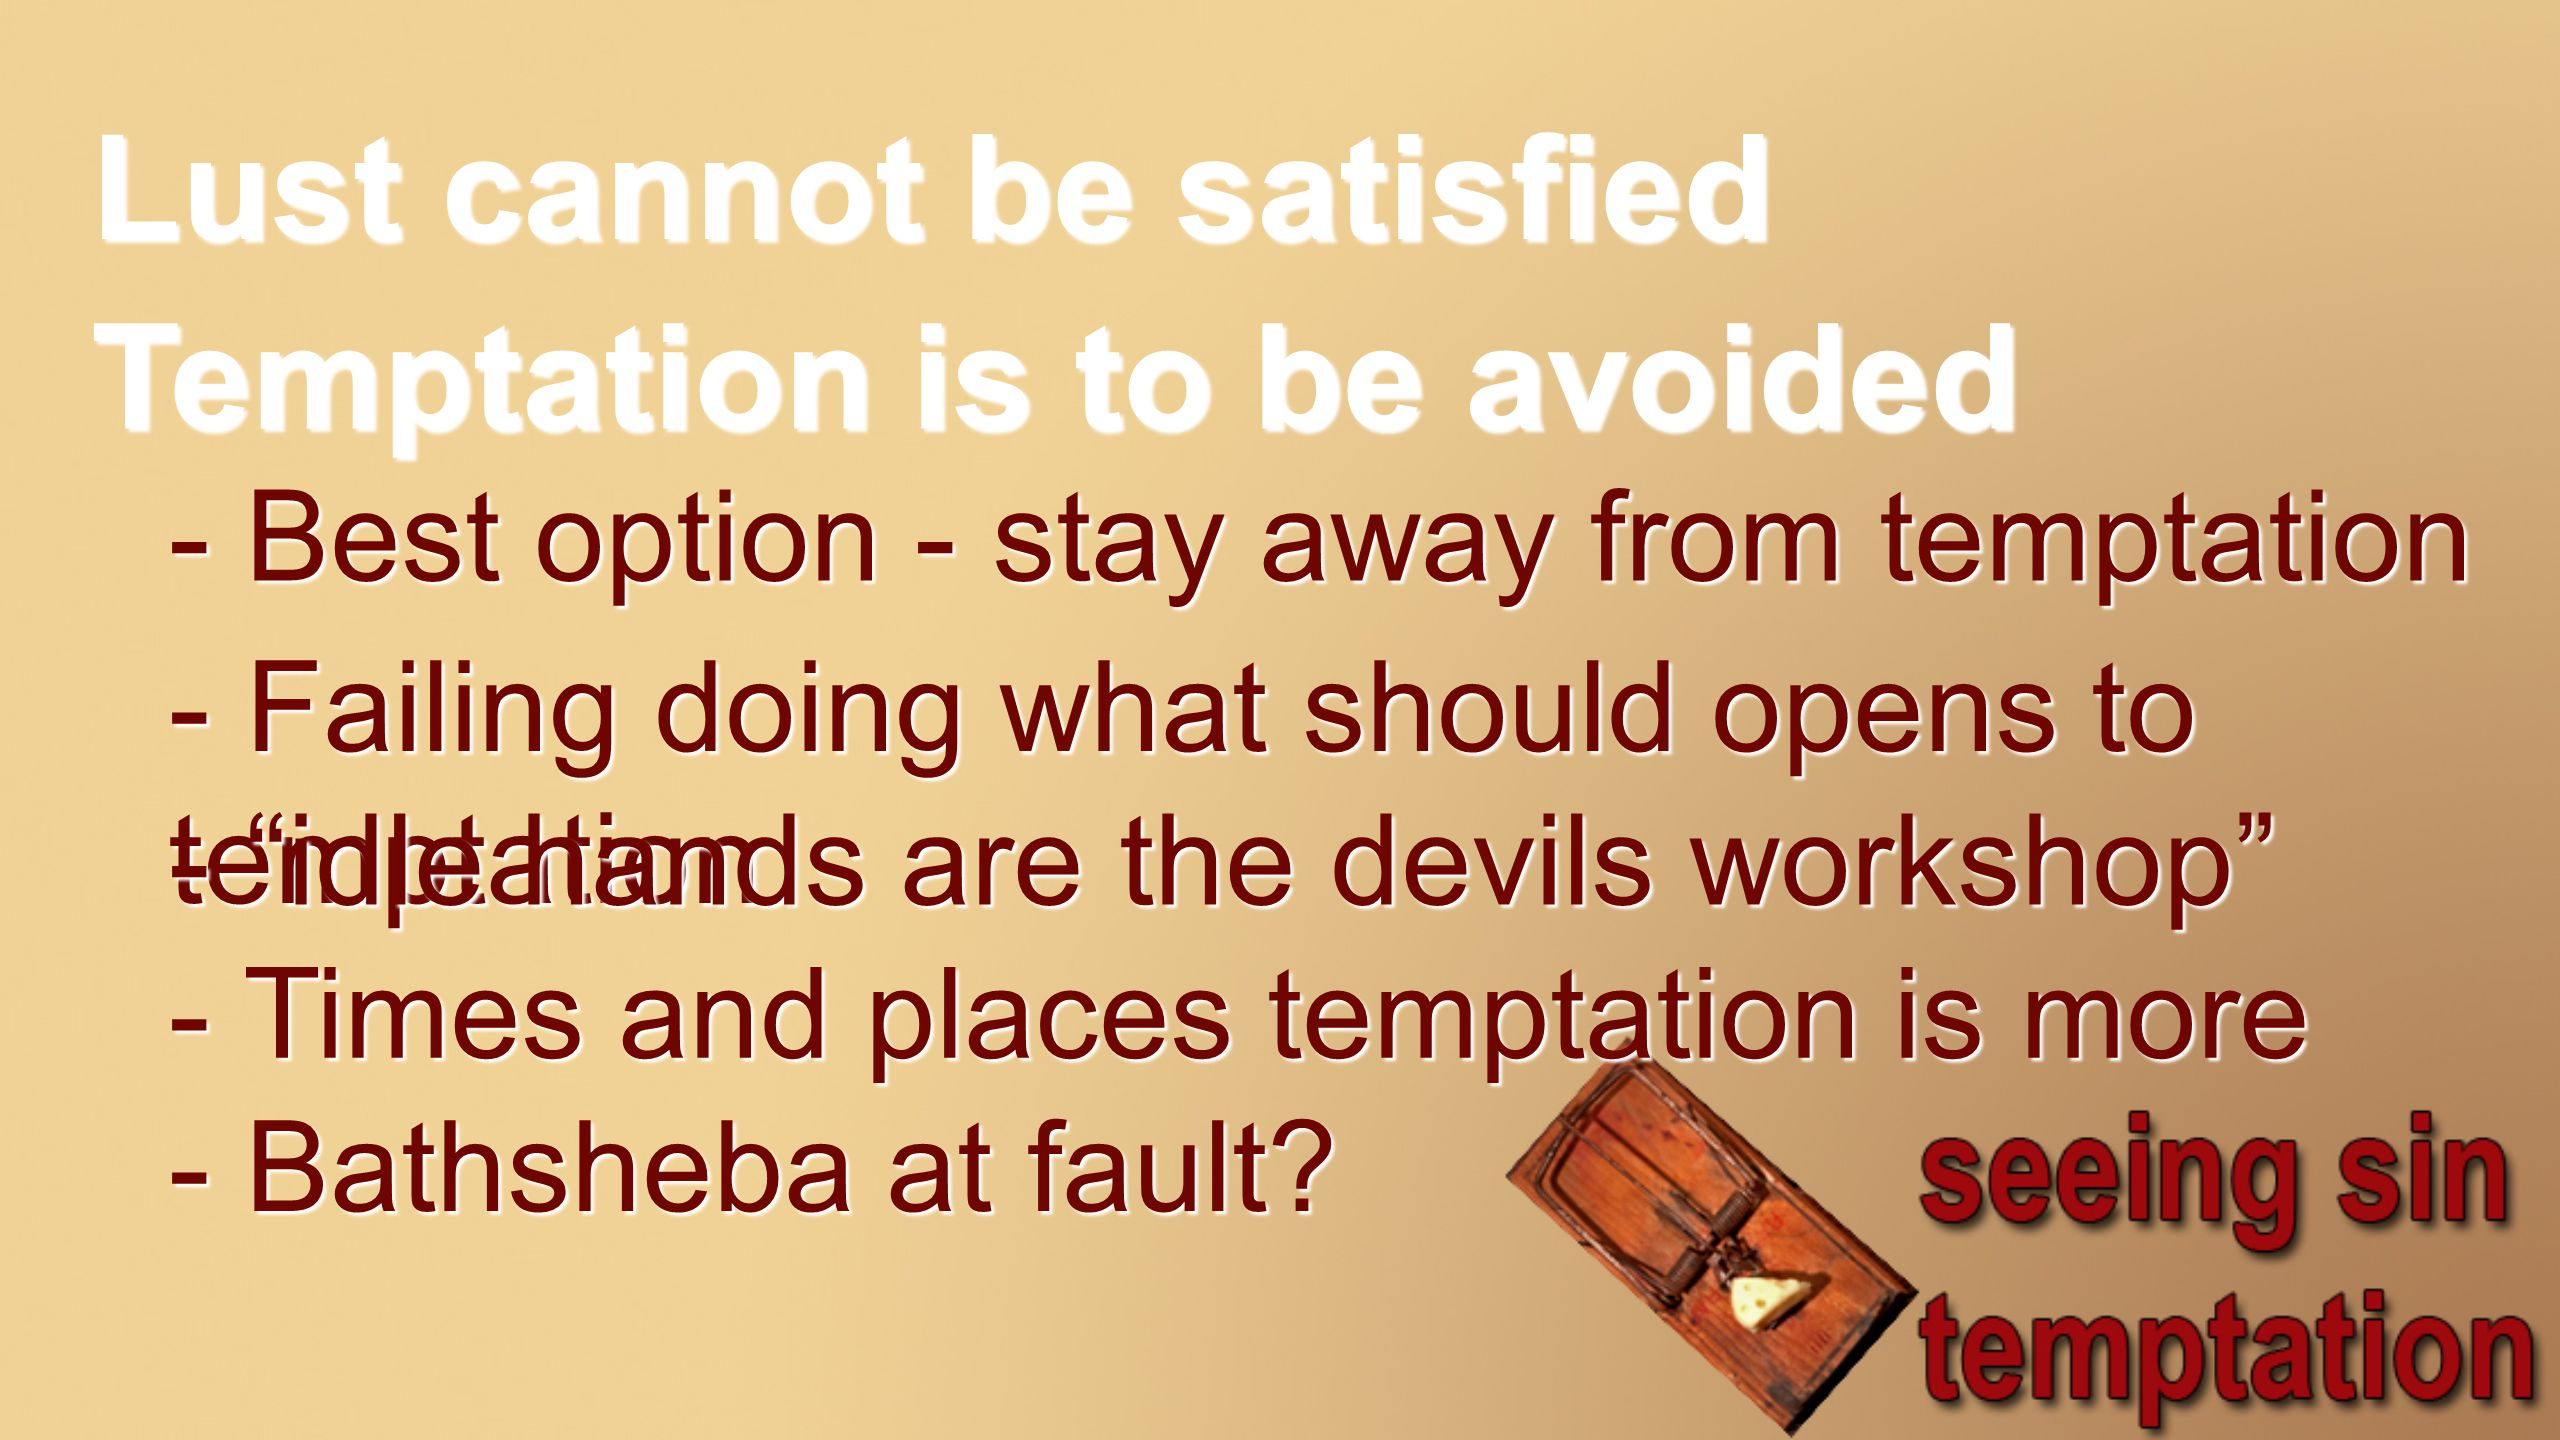 Lust cannot be satisfied Temptation is to be avoided - Best option - stay away from temptation - Failing doing what should opens to temptation - idle hands are the devils workshop - Times and places temptation is more - Bathsheba at fault